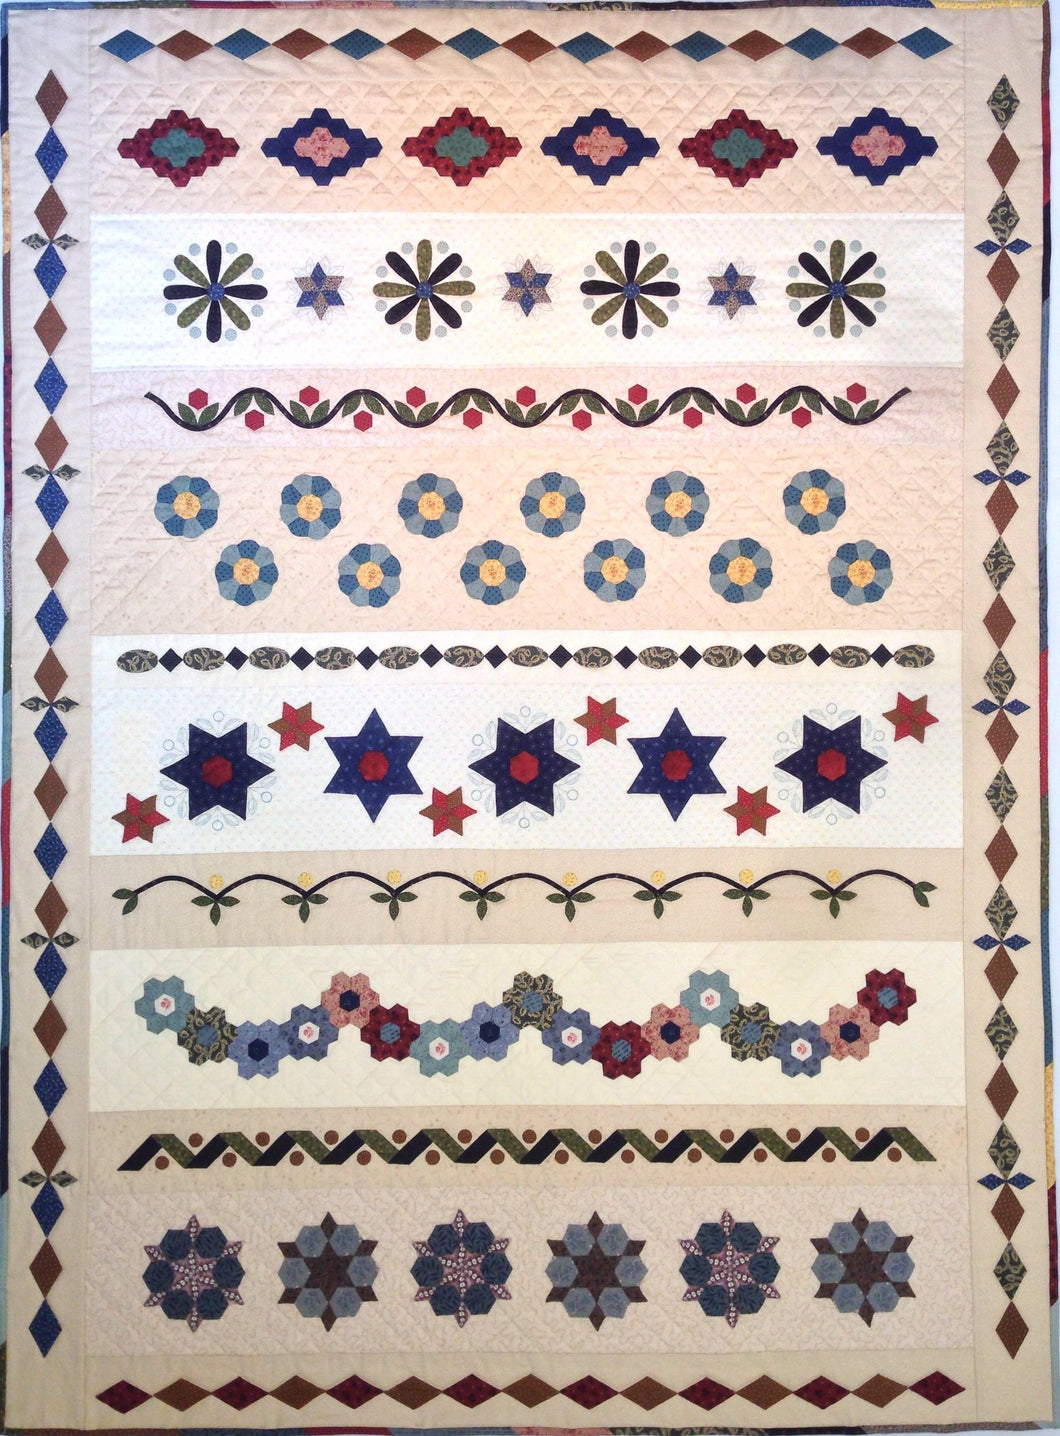 Village English Paper Pieced Sampler - Block of the Month